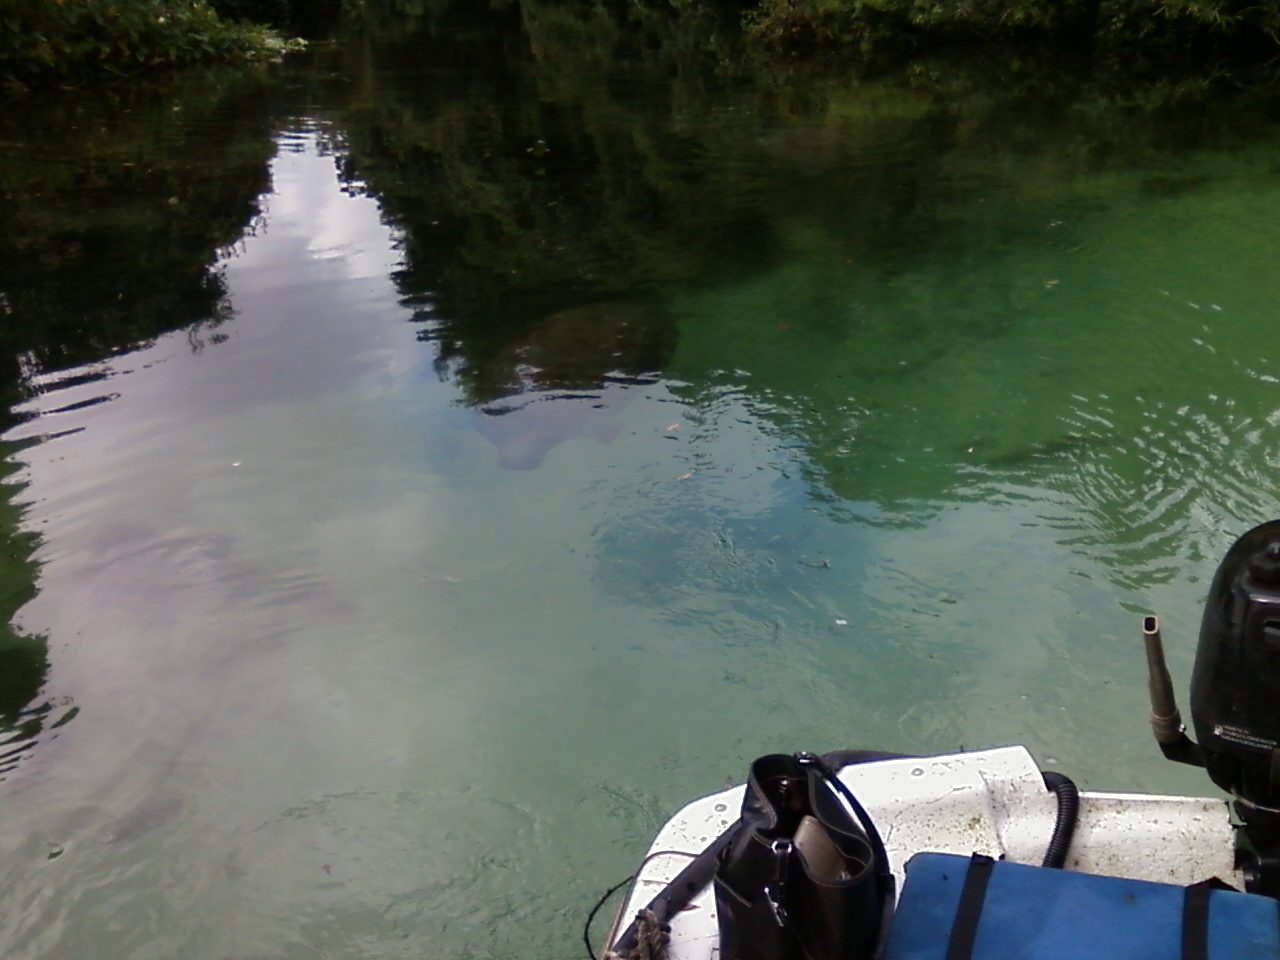 Jon boat following manatee swimming from murky water to clear water